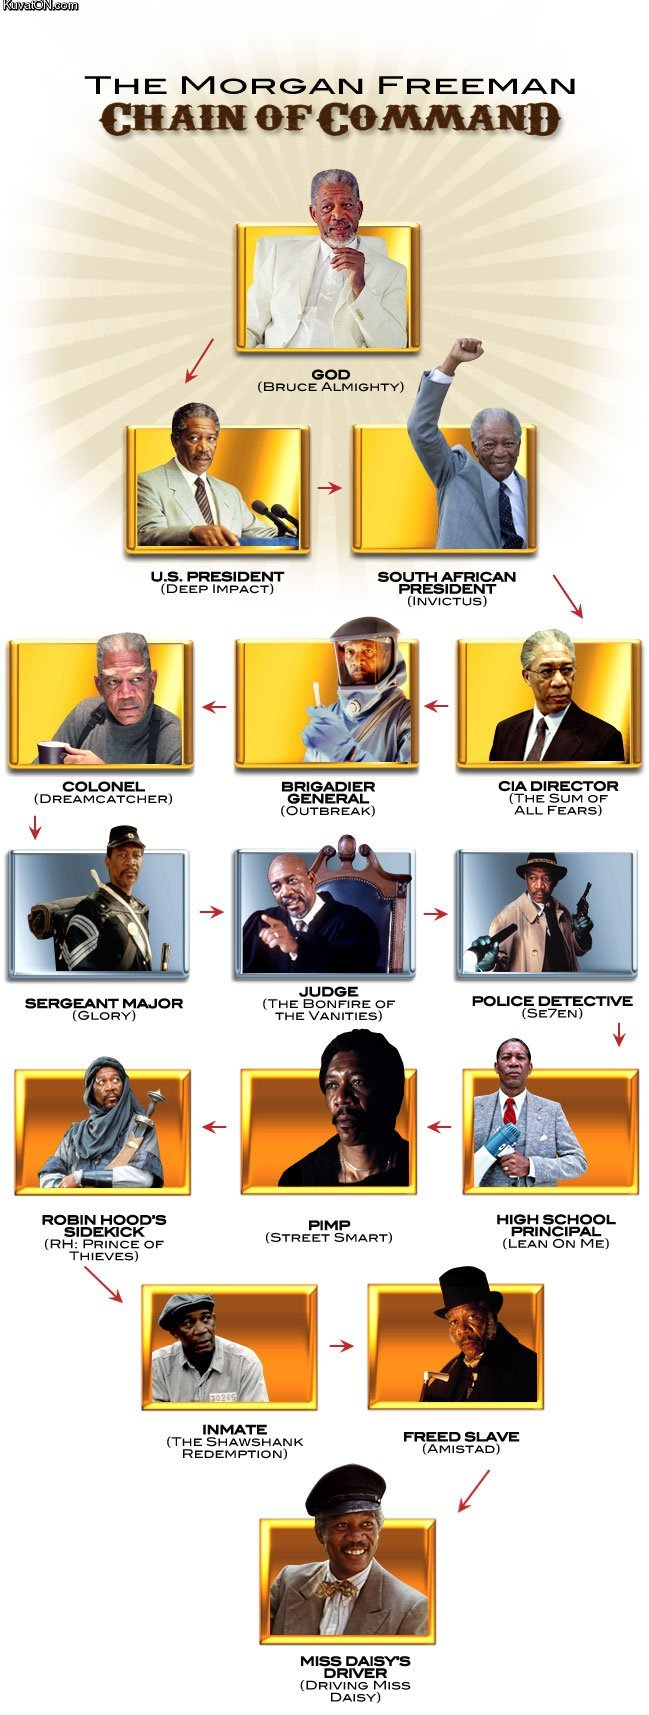 morgan freeman chain command